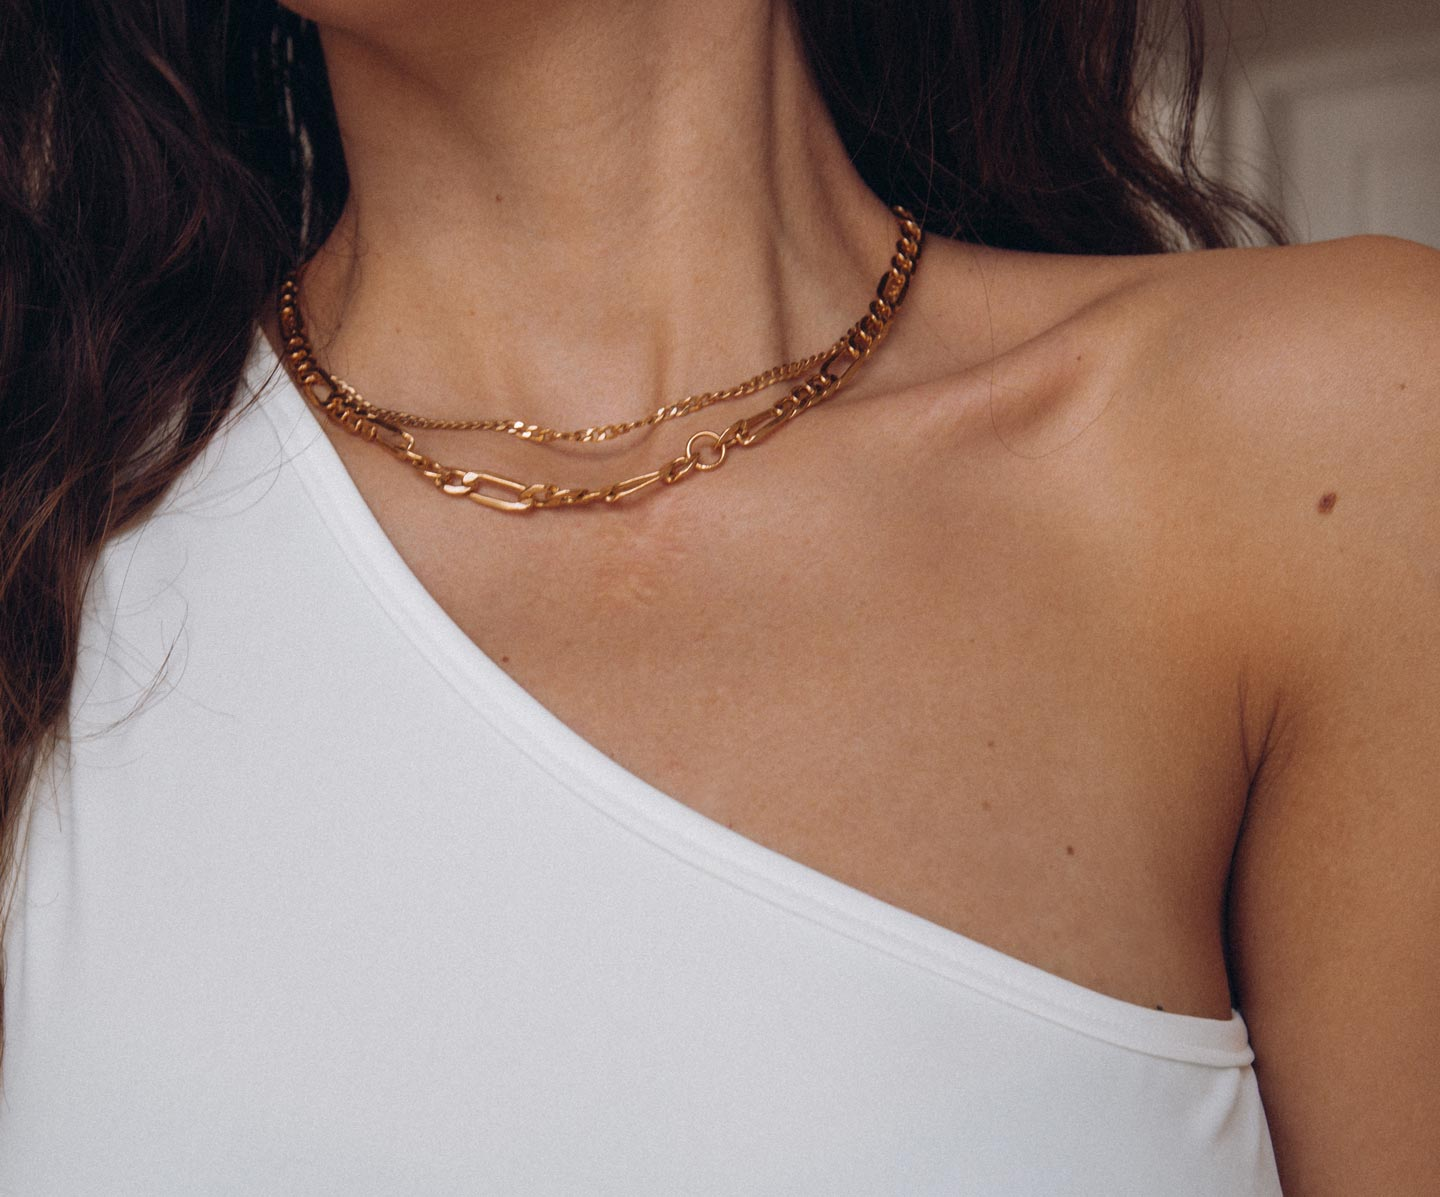 necklace-layering-gold-chains